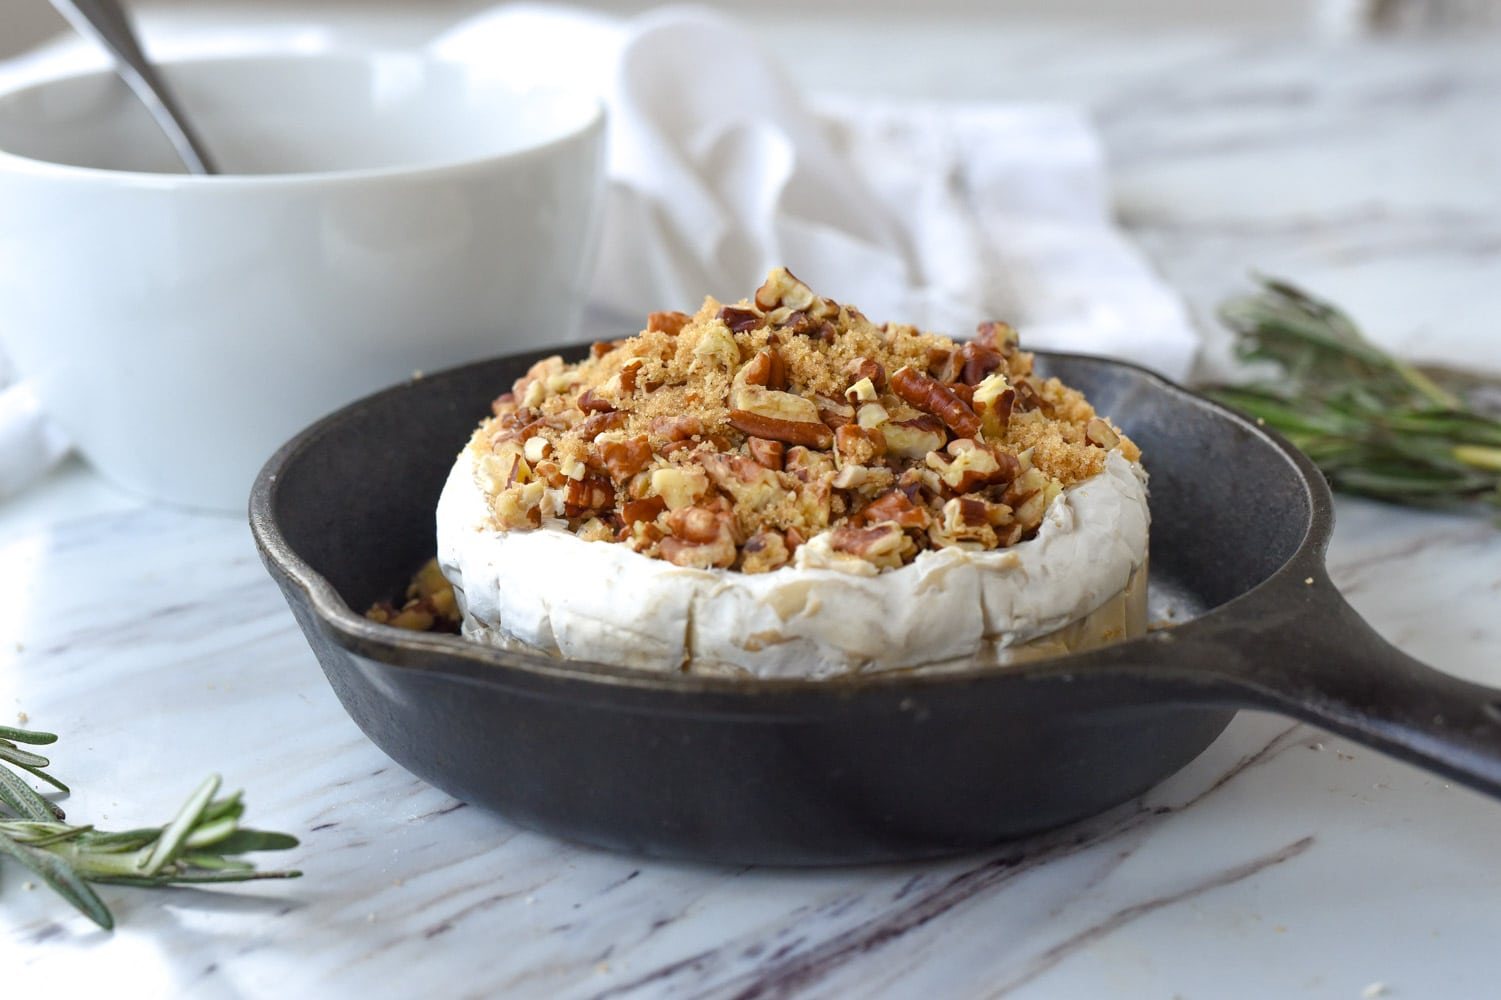 brie with brown sugar and pecans on top